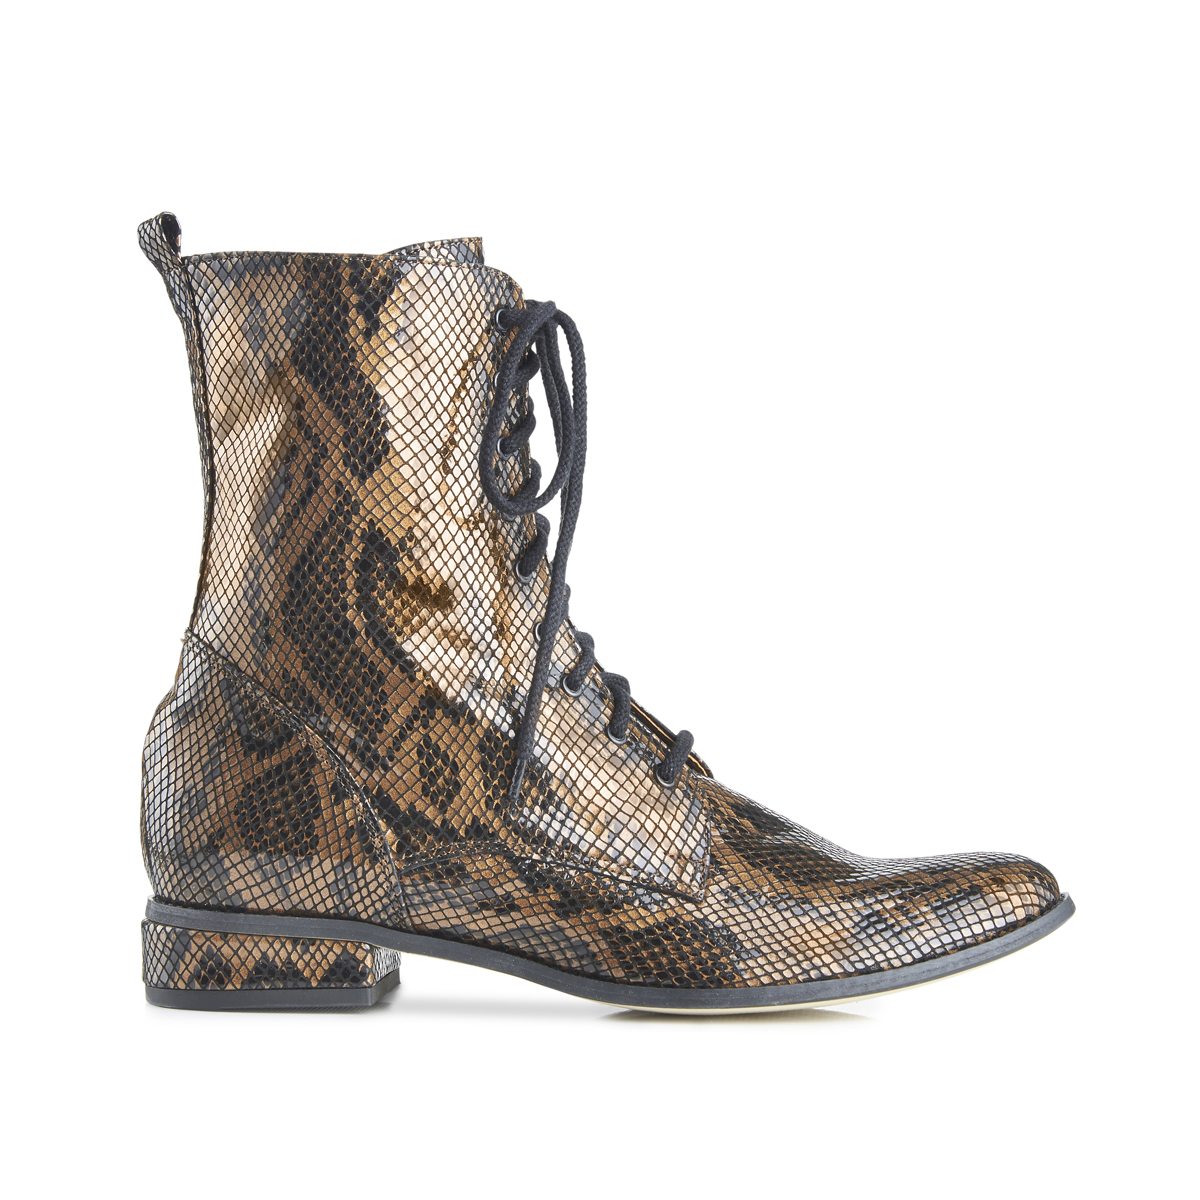 Yaga snake effect leather lace-up ankle boots - brown